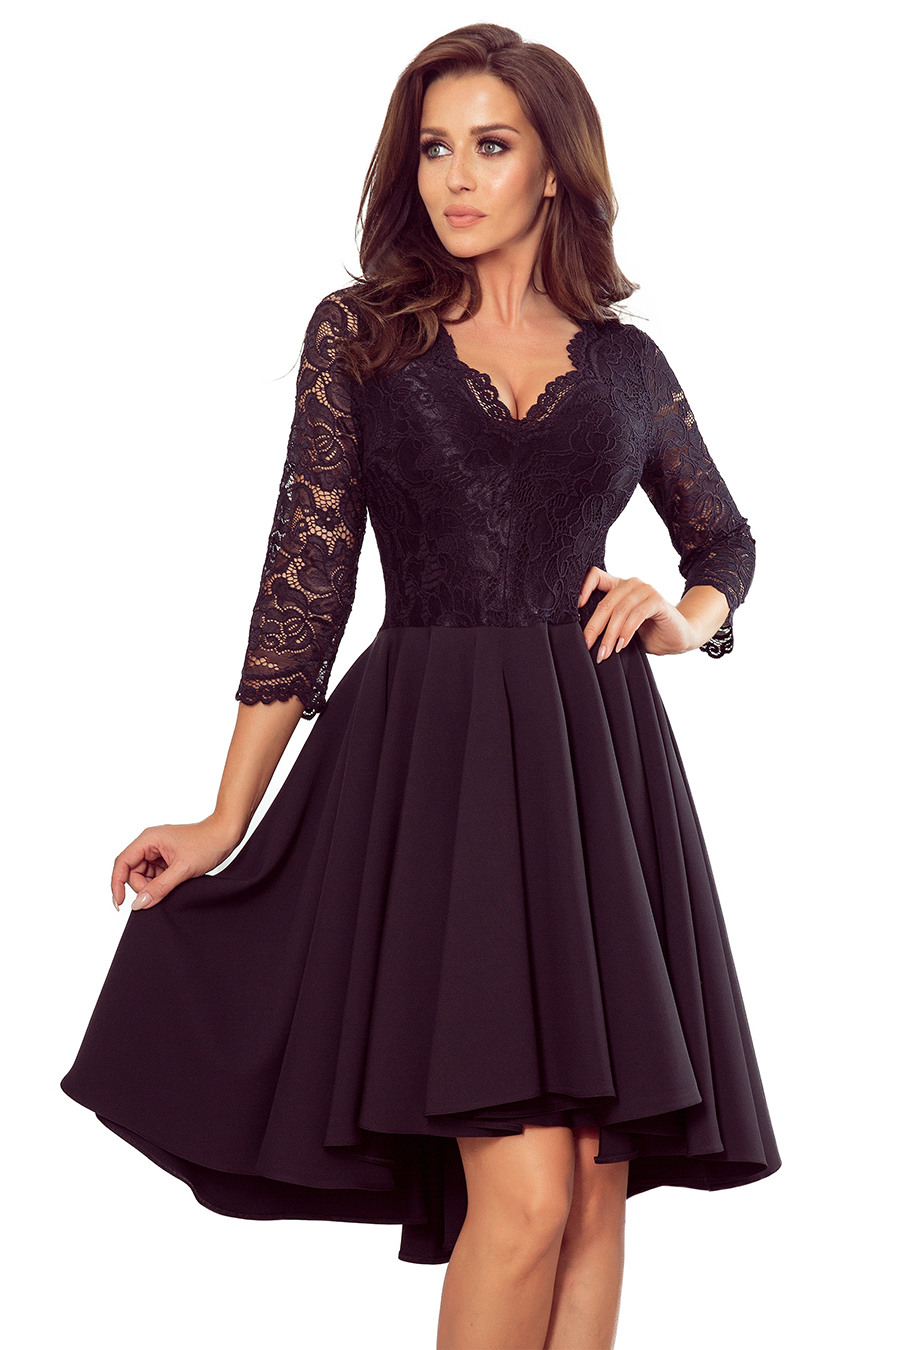 Formal Luxus Ballkleid Cocktailkleid Bester Preis10 Luxurius Ballkleid Cocktailkleid Galerie